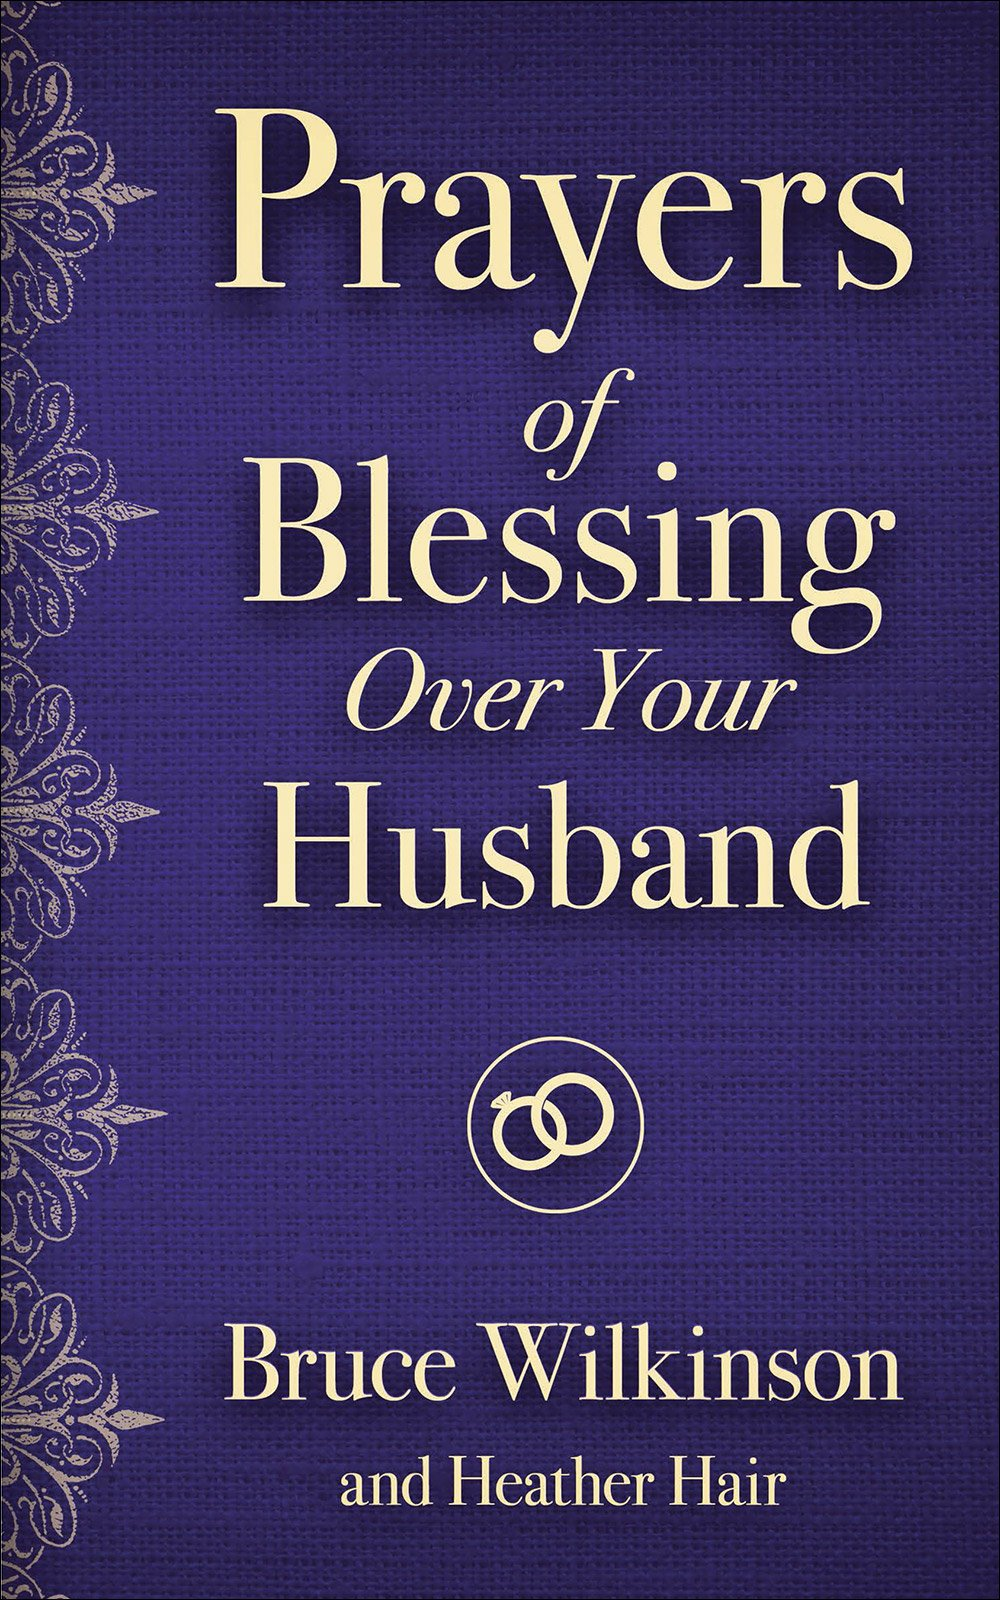 How to pray to find a good husband